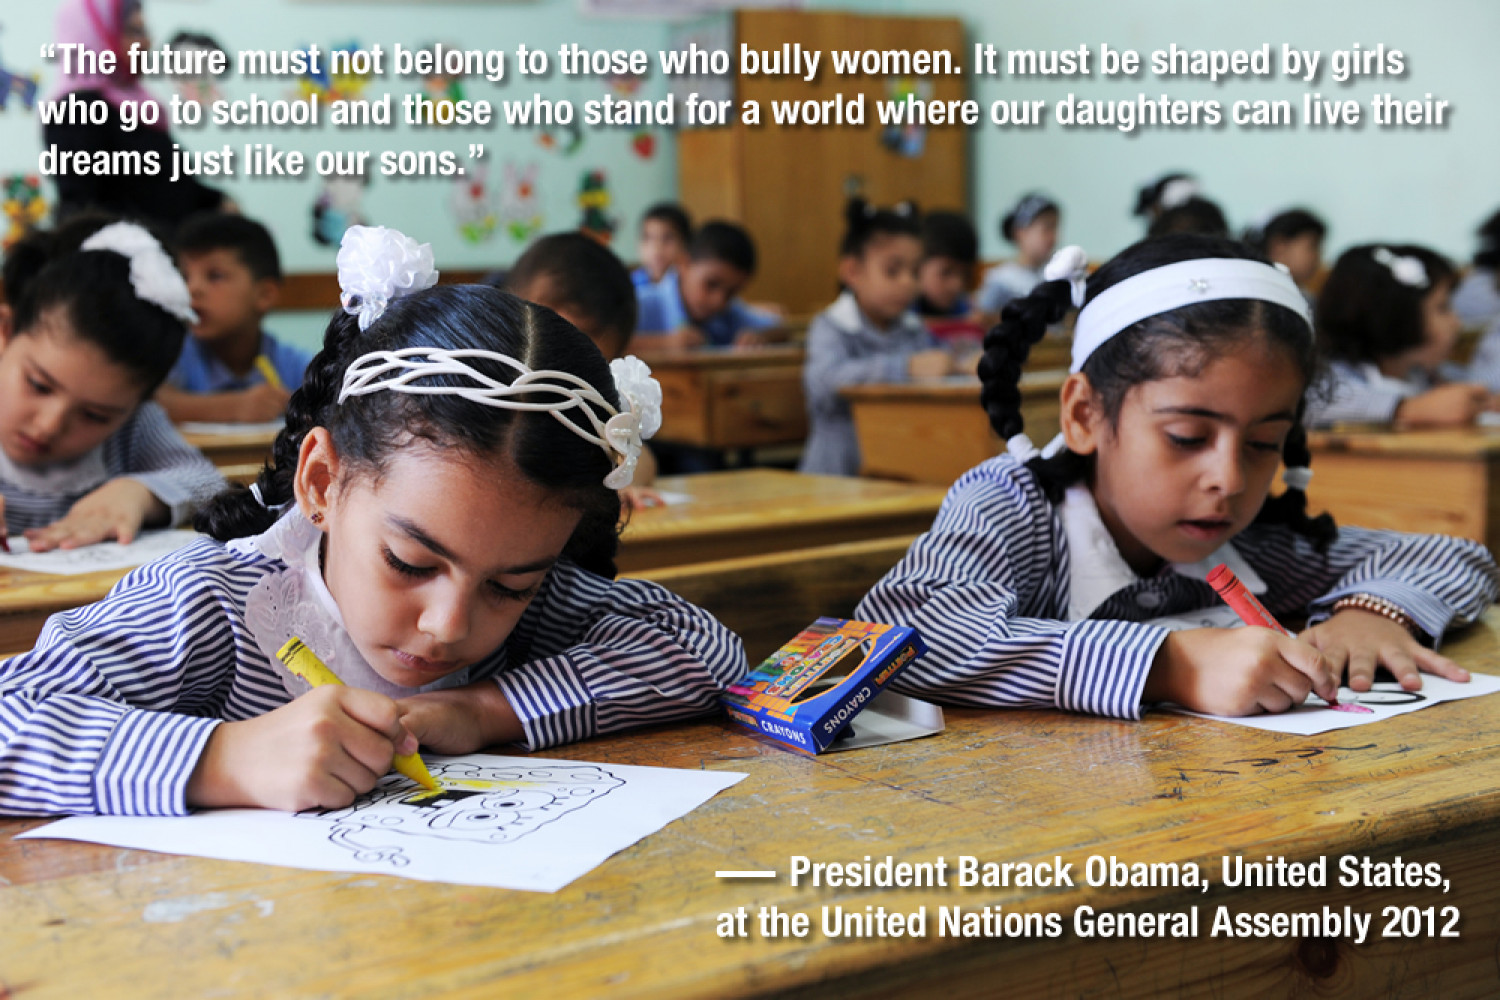 Gender quotes GA67: Barack Obama on girls education Infographic